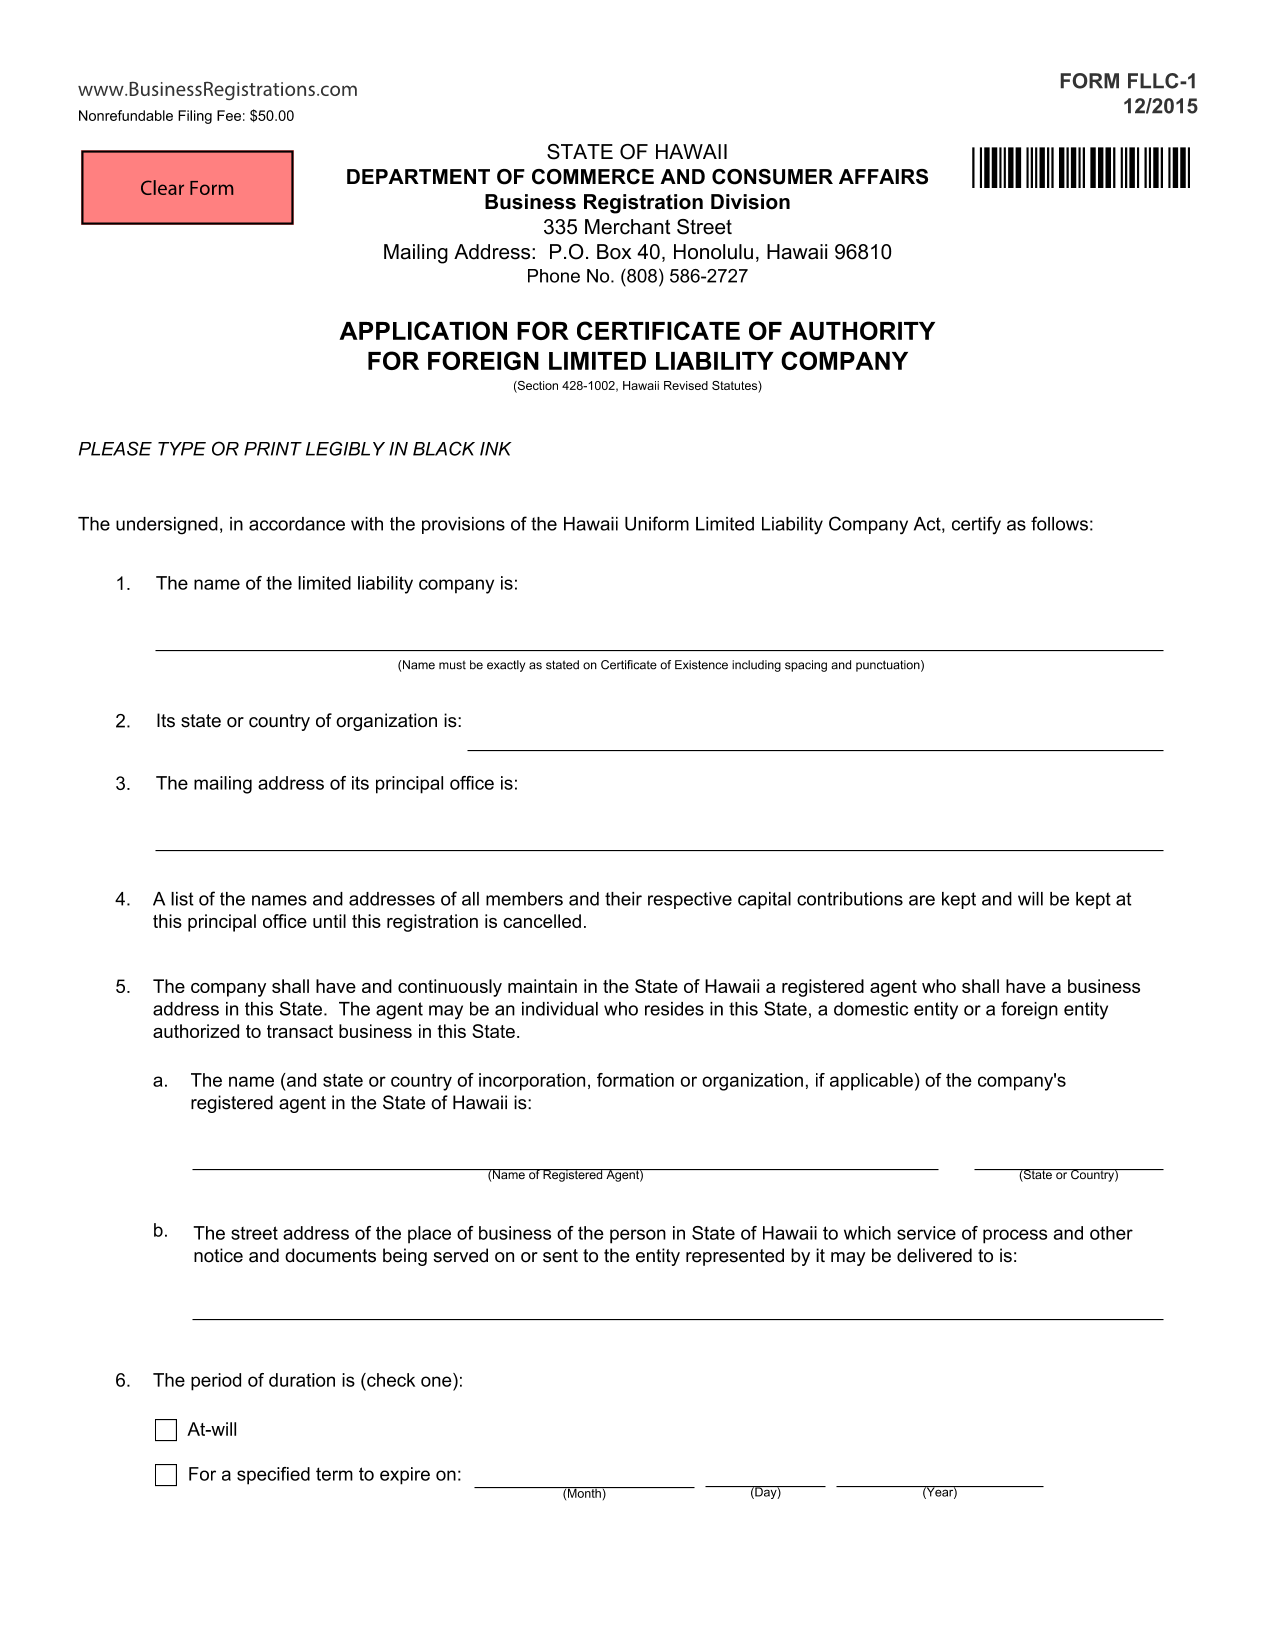 hawaii-foreign-llc-application-for-certificate-of-authority